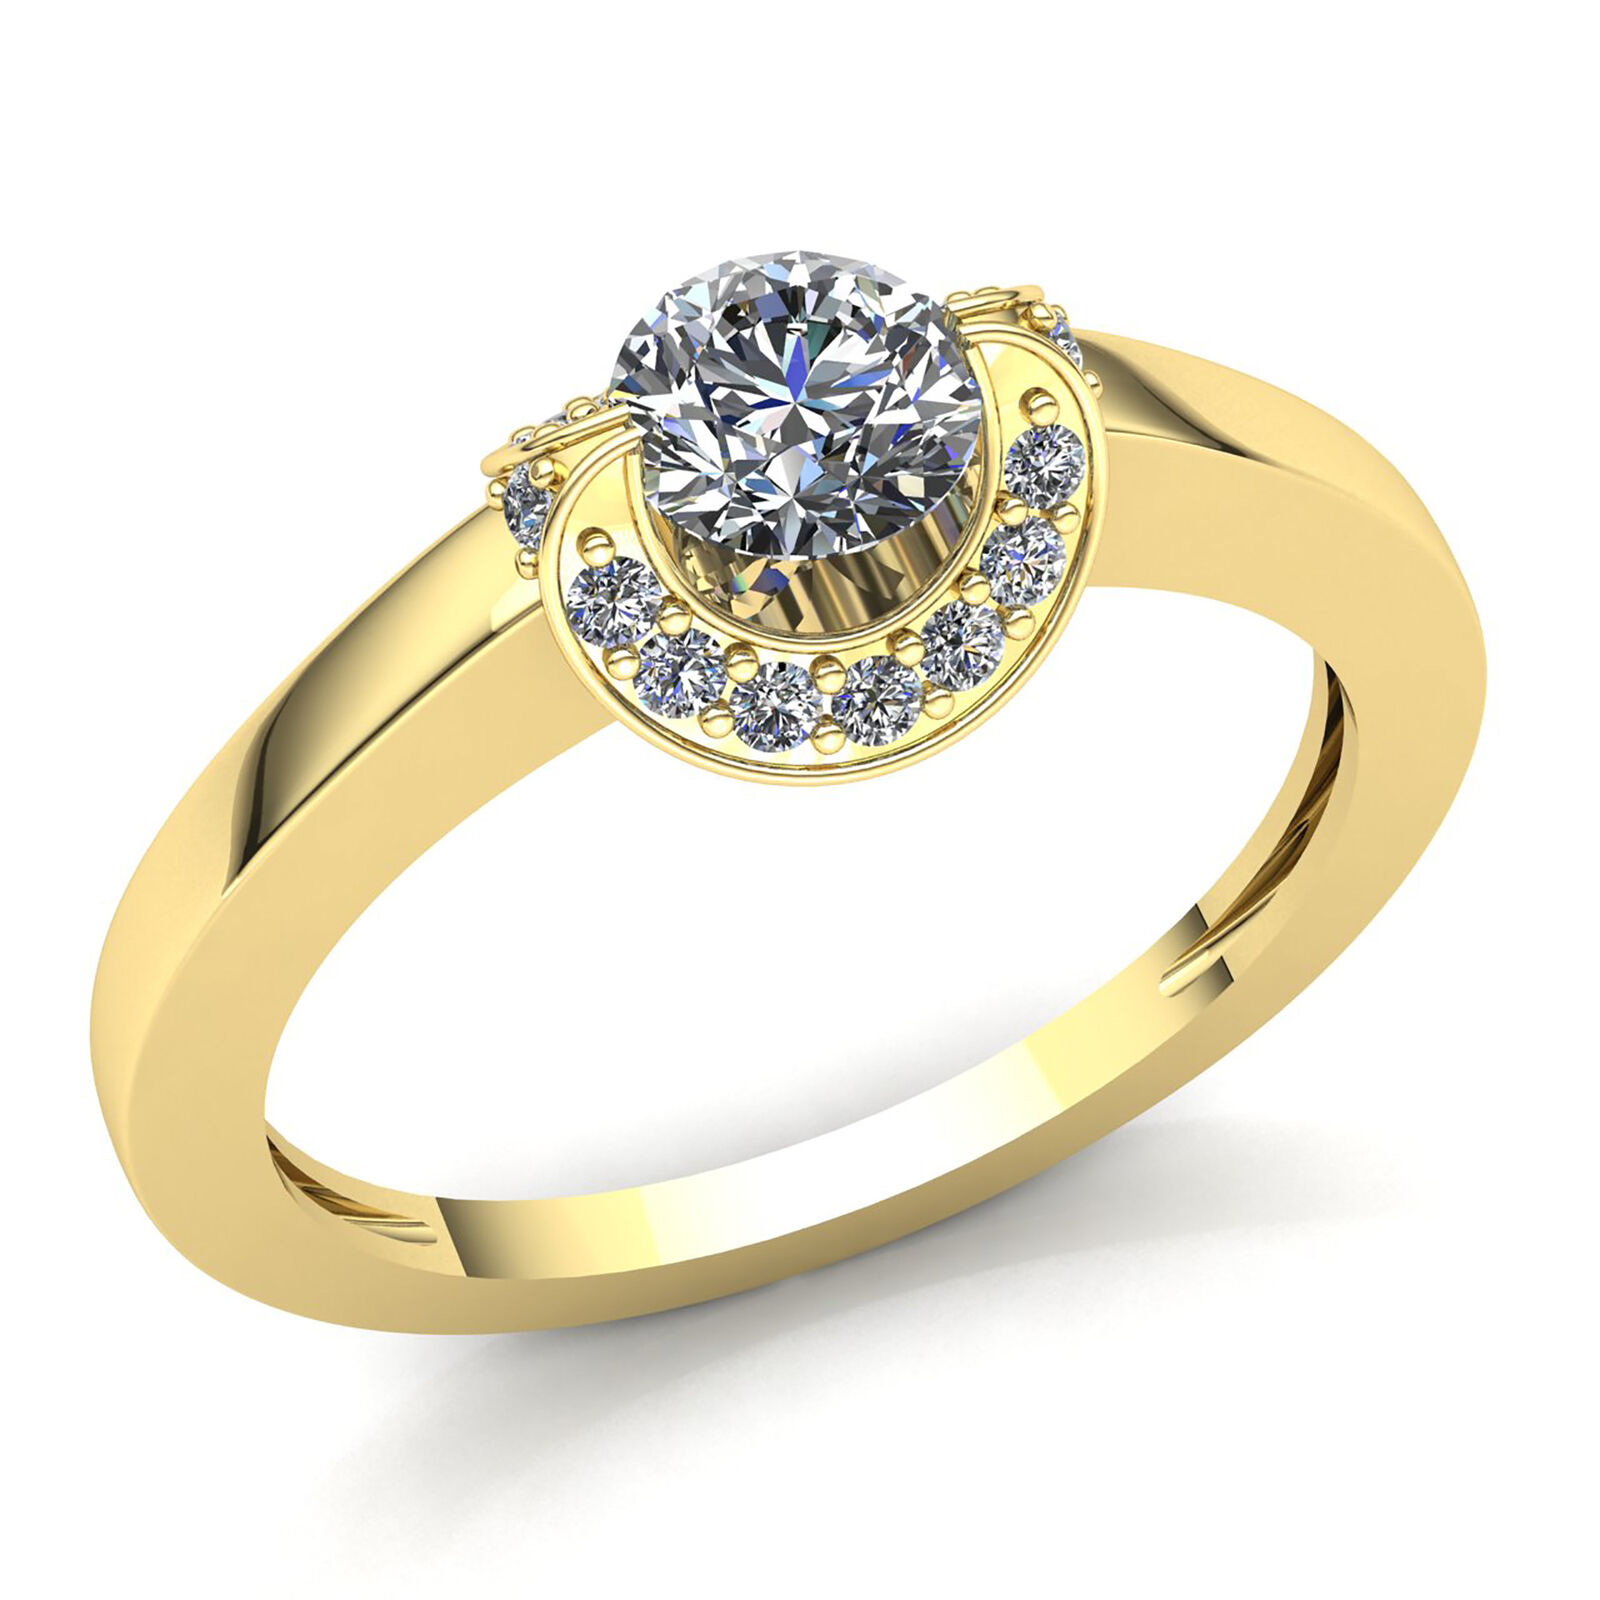 0.75ctw Round Cut Diamond Ladies Curved Halo Solitaire Engagement Ring 18K gold